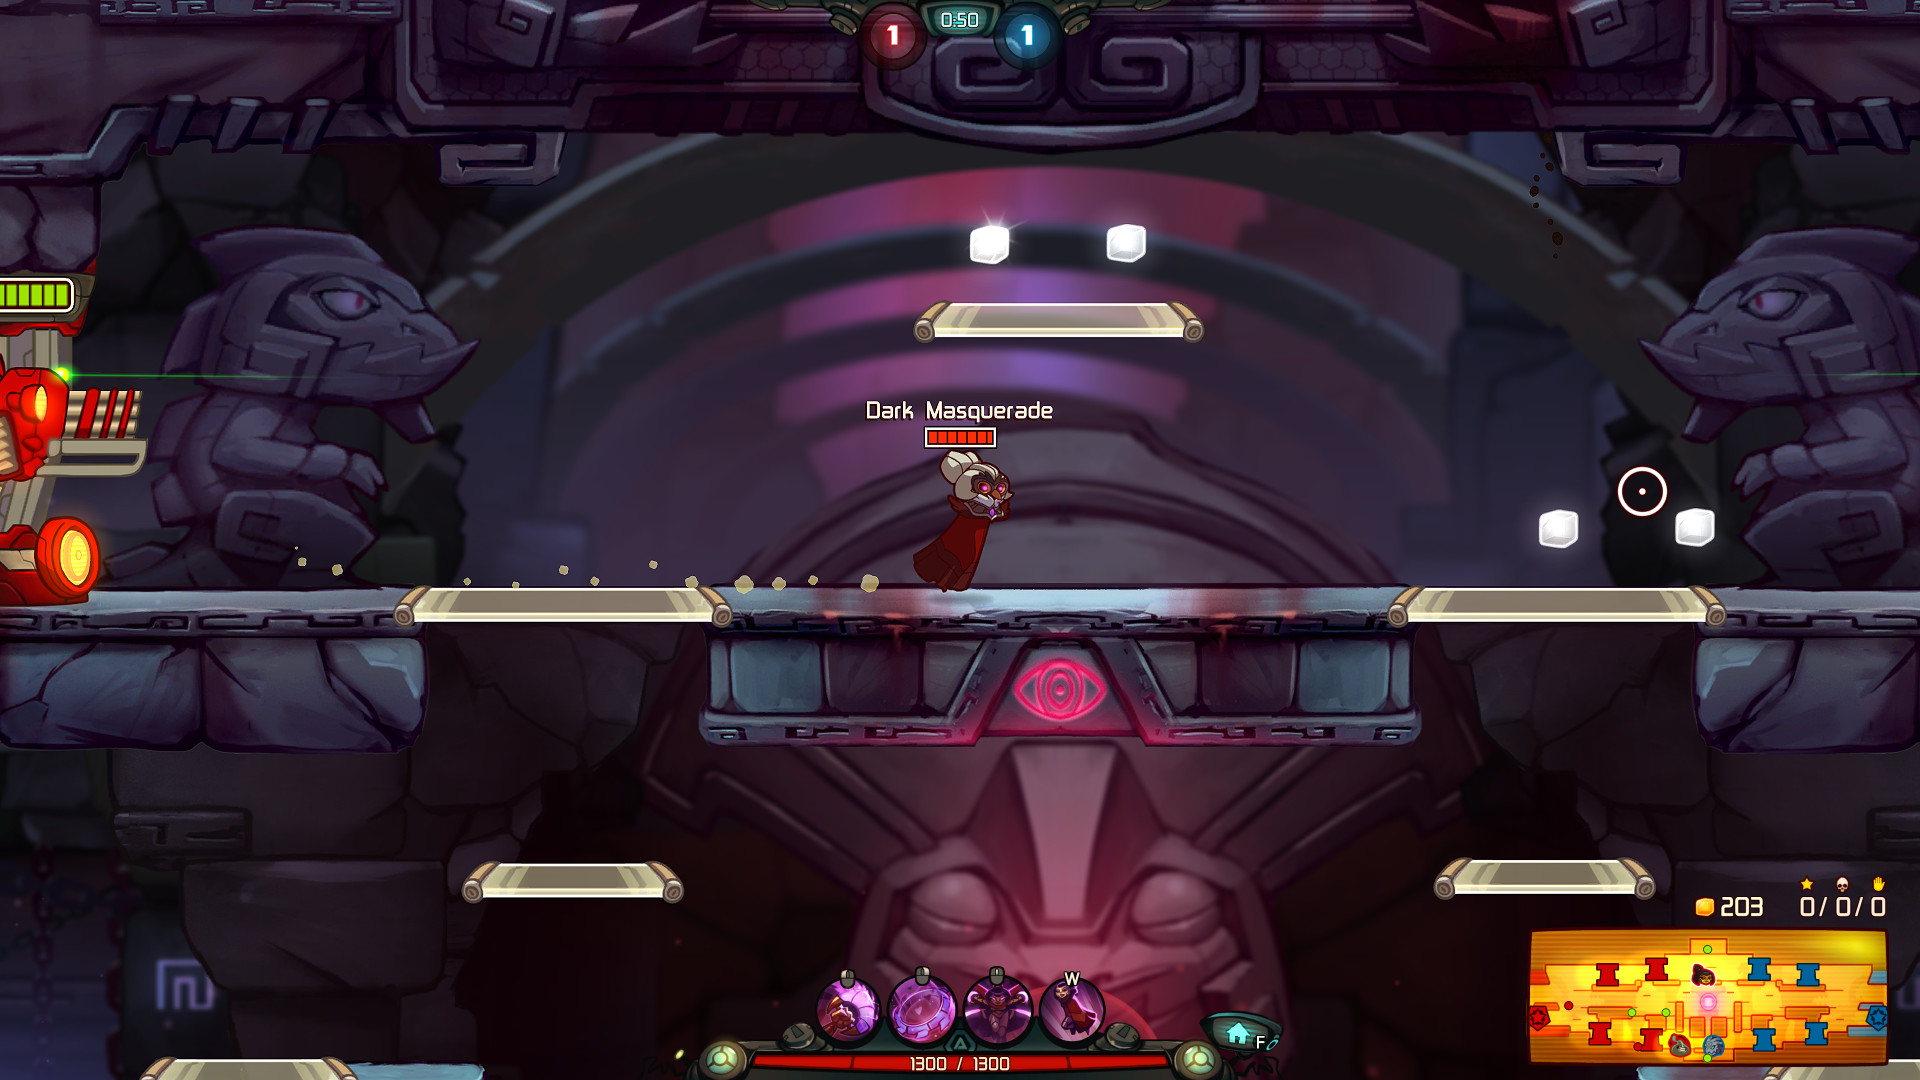 Awesomenauts - Dark Masquerade Qi'Tara Skin screenshot